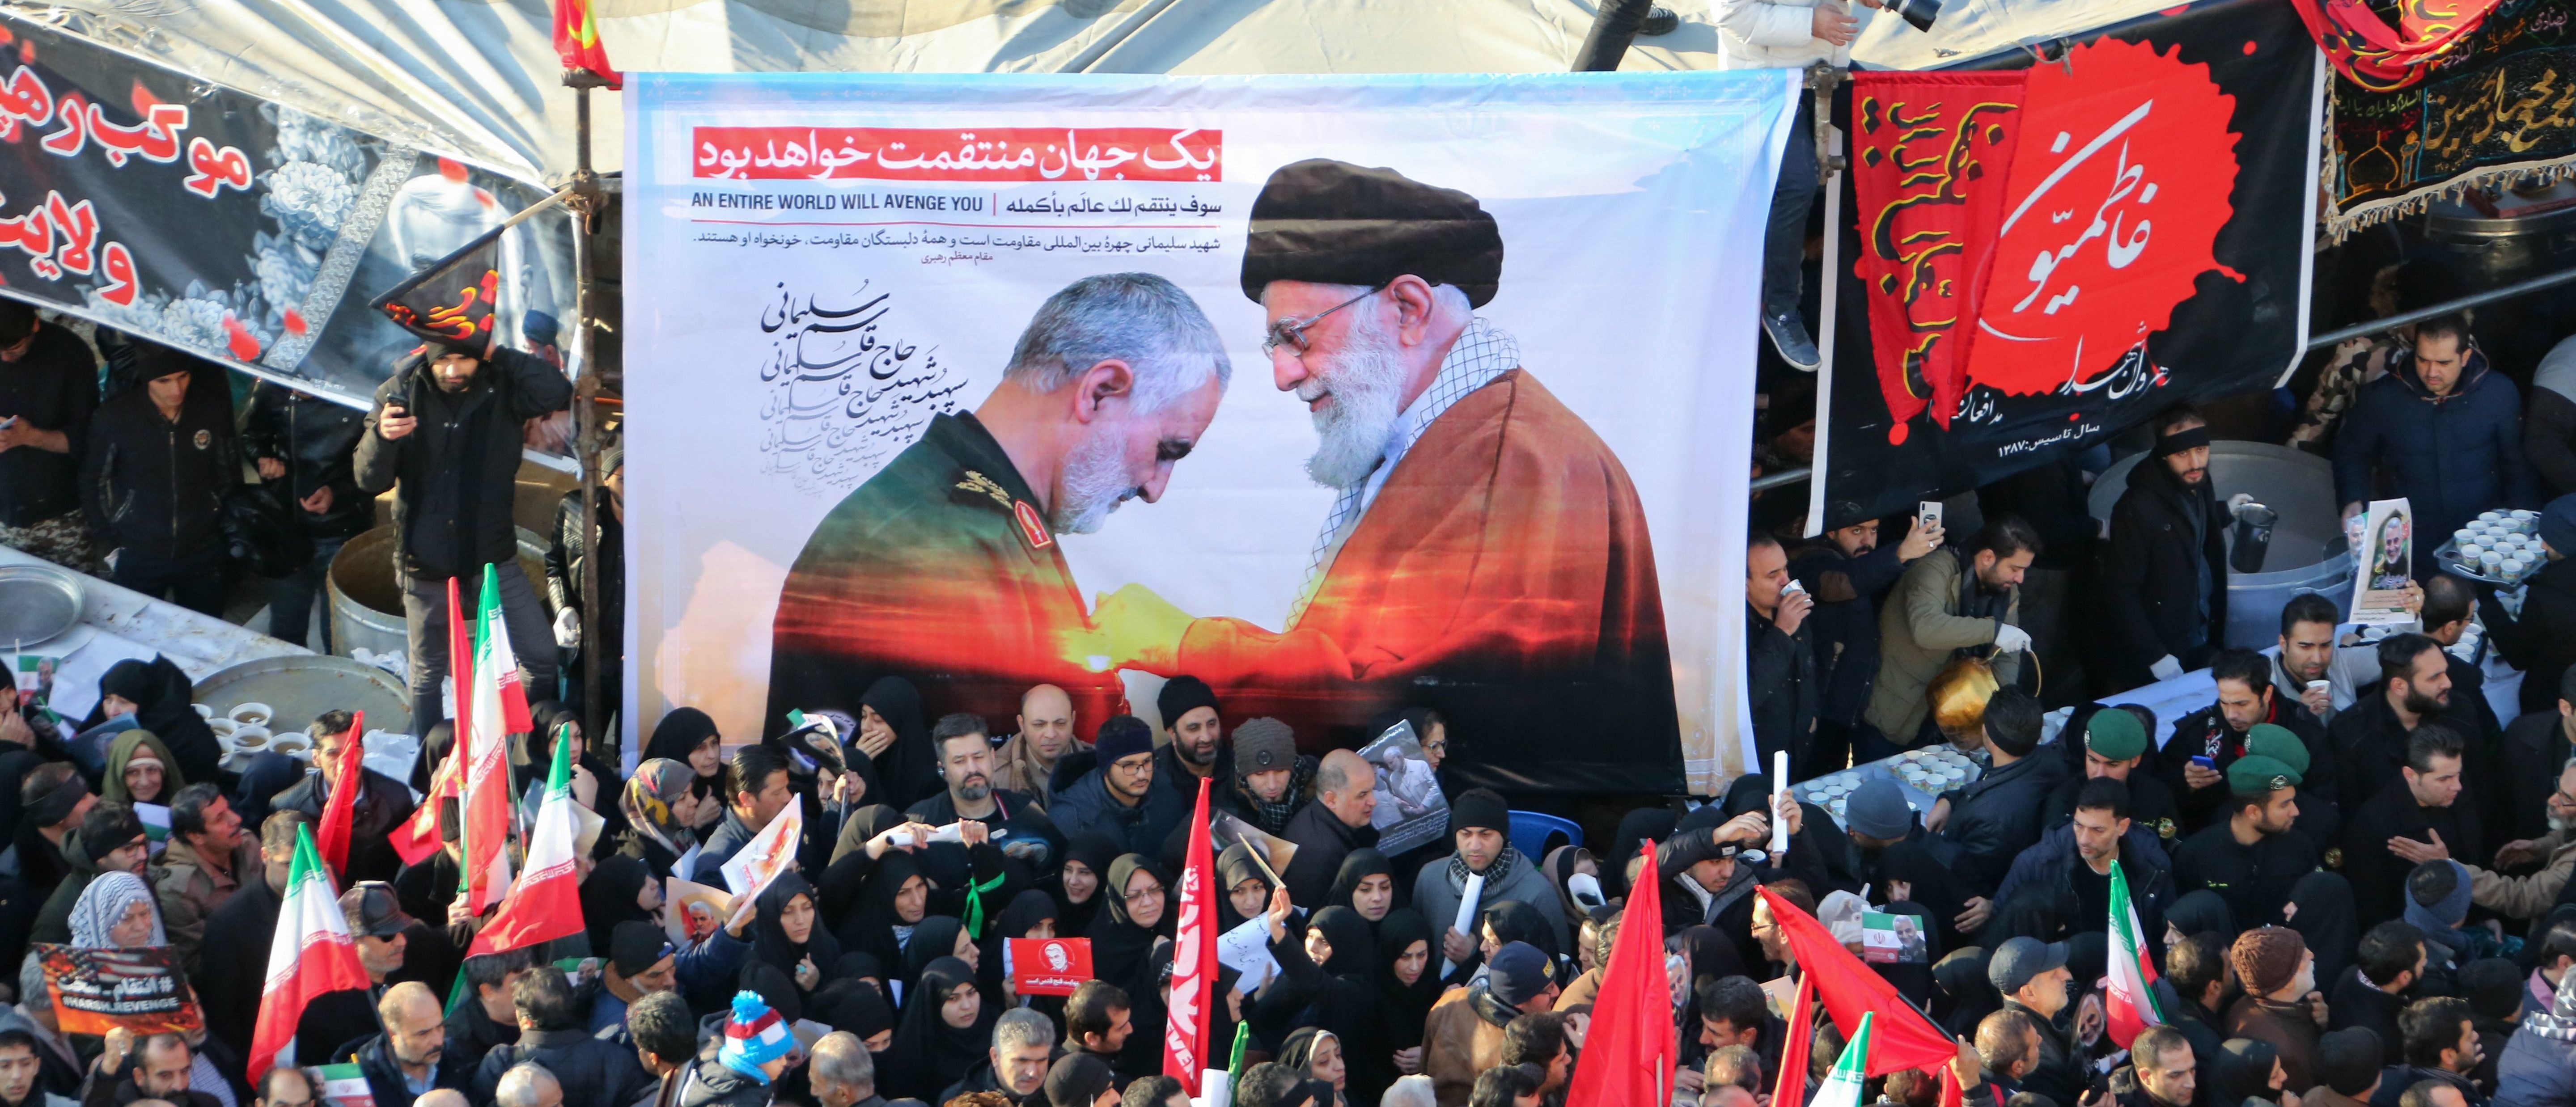 Iranian mourners carry a picture of Iran's Supreme Leader Ayatollah Ali Khamenei (R) granting the Order of Zolfaghar, the highest military honour of Iran, to General Qasem Soleimani, during the latter's funeral procession in the capital Tehran on January 6, 2020. - Downtown Tehran was brought to a standstill as mourners flooded the Iranian capital to pay an emotional homage to Soleimani, the